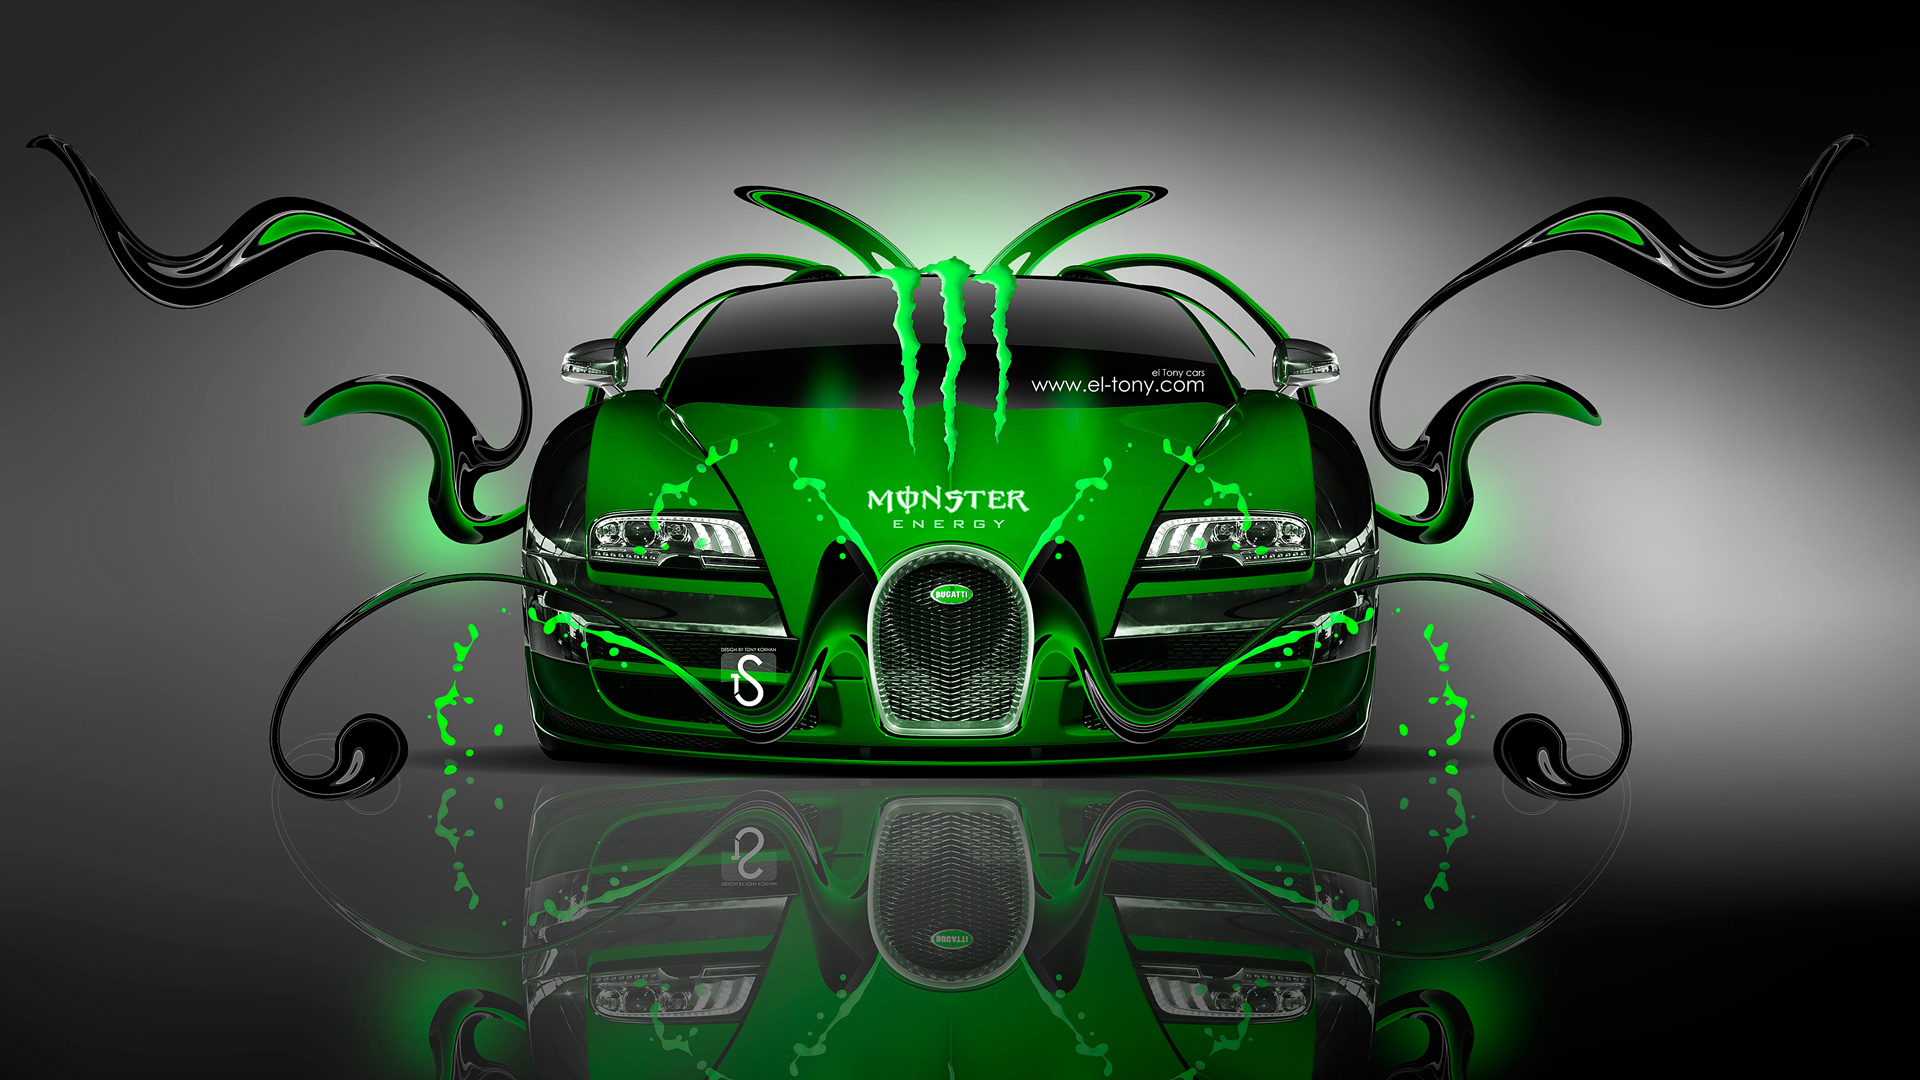 Monster Energy Bugatti Veyron Front Green Plastic Car Design By Tony Kokhan   El Tony on mclaren p1 blue fire